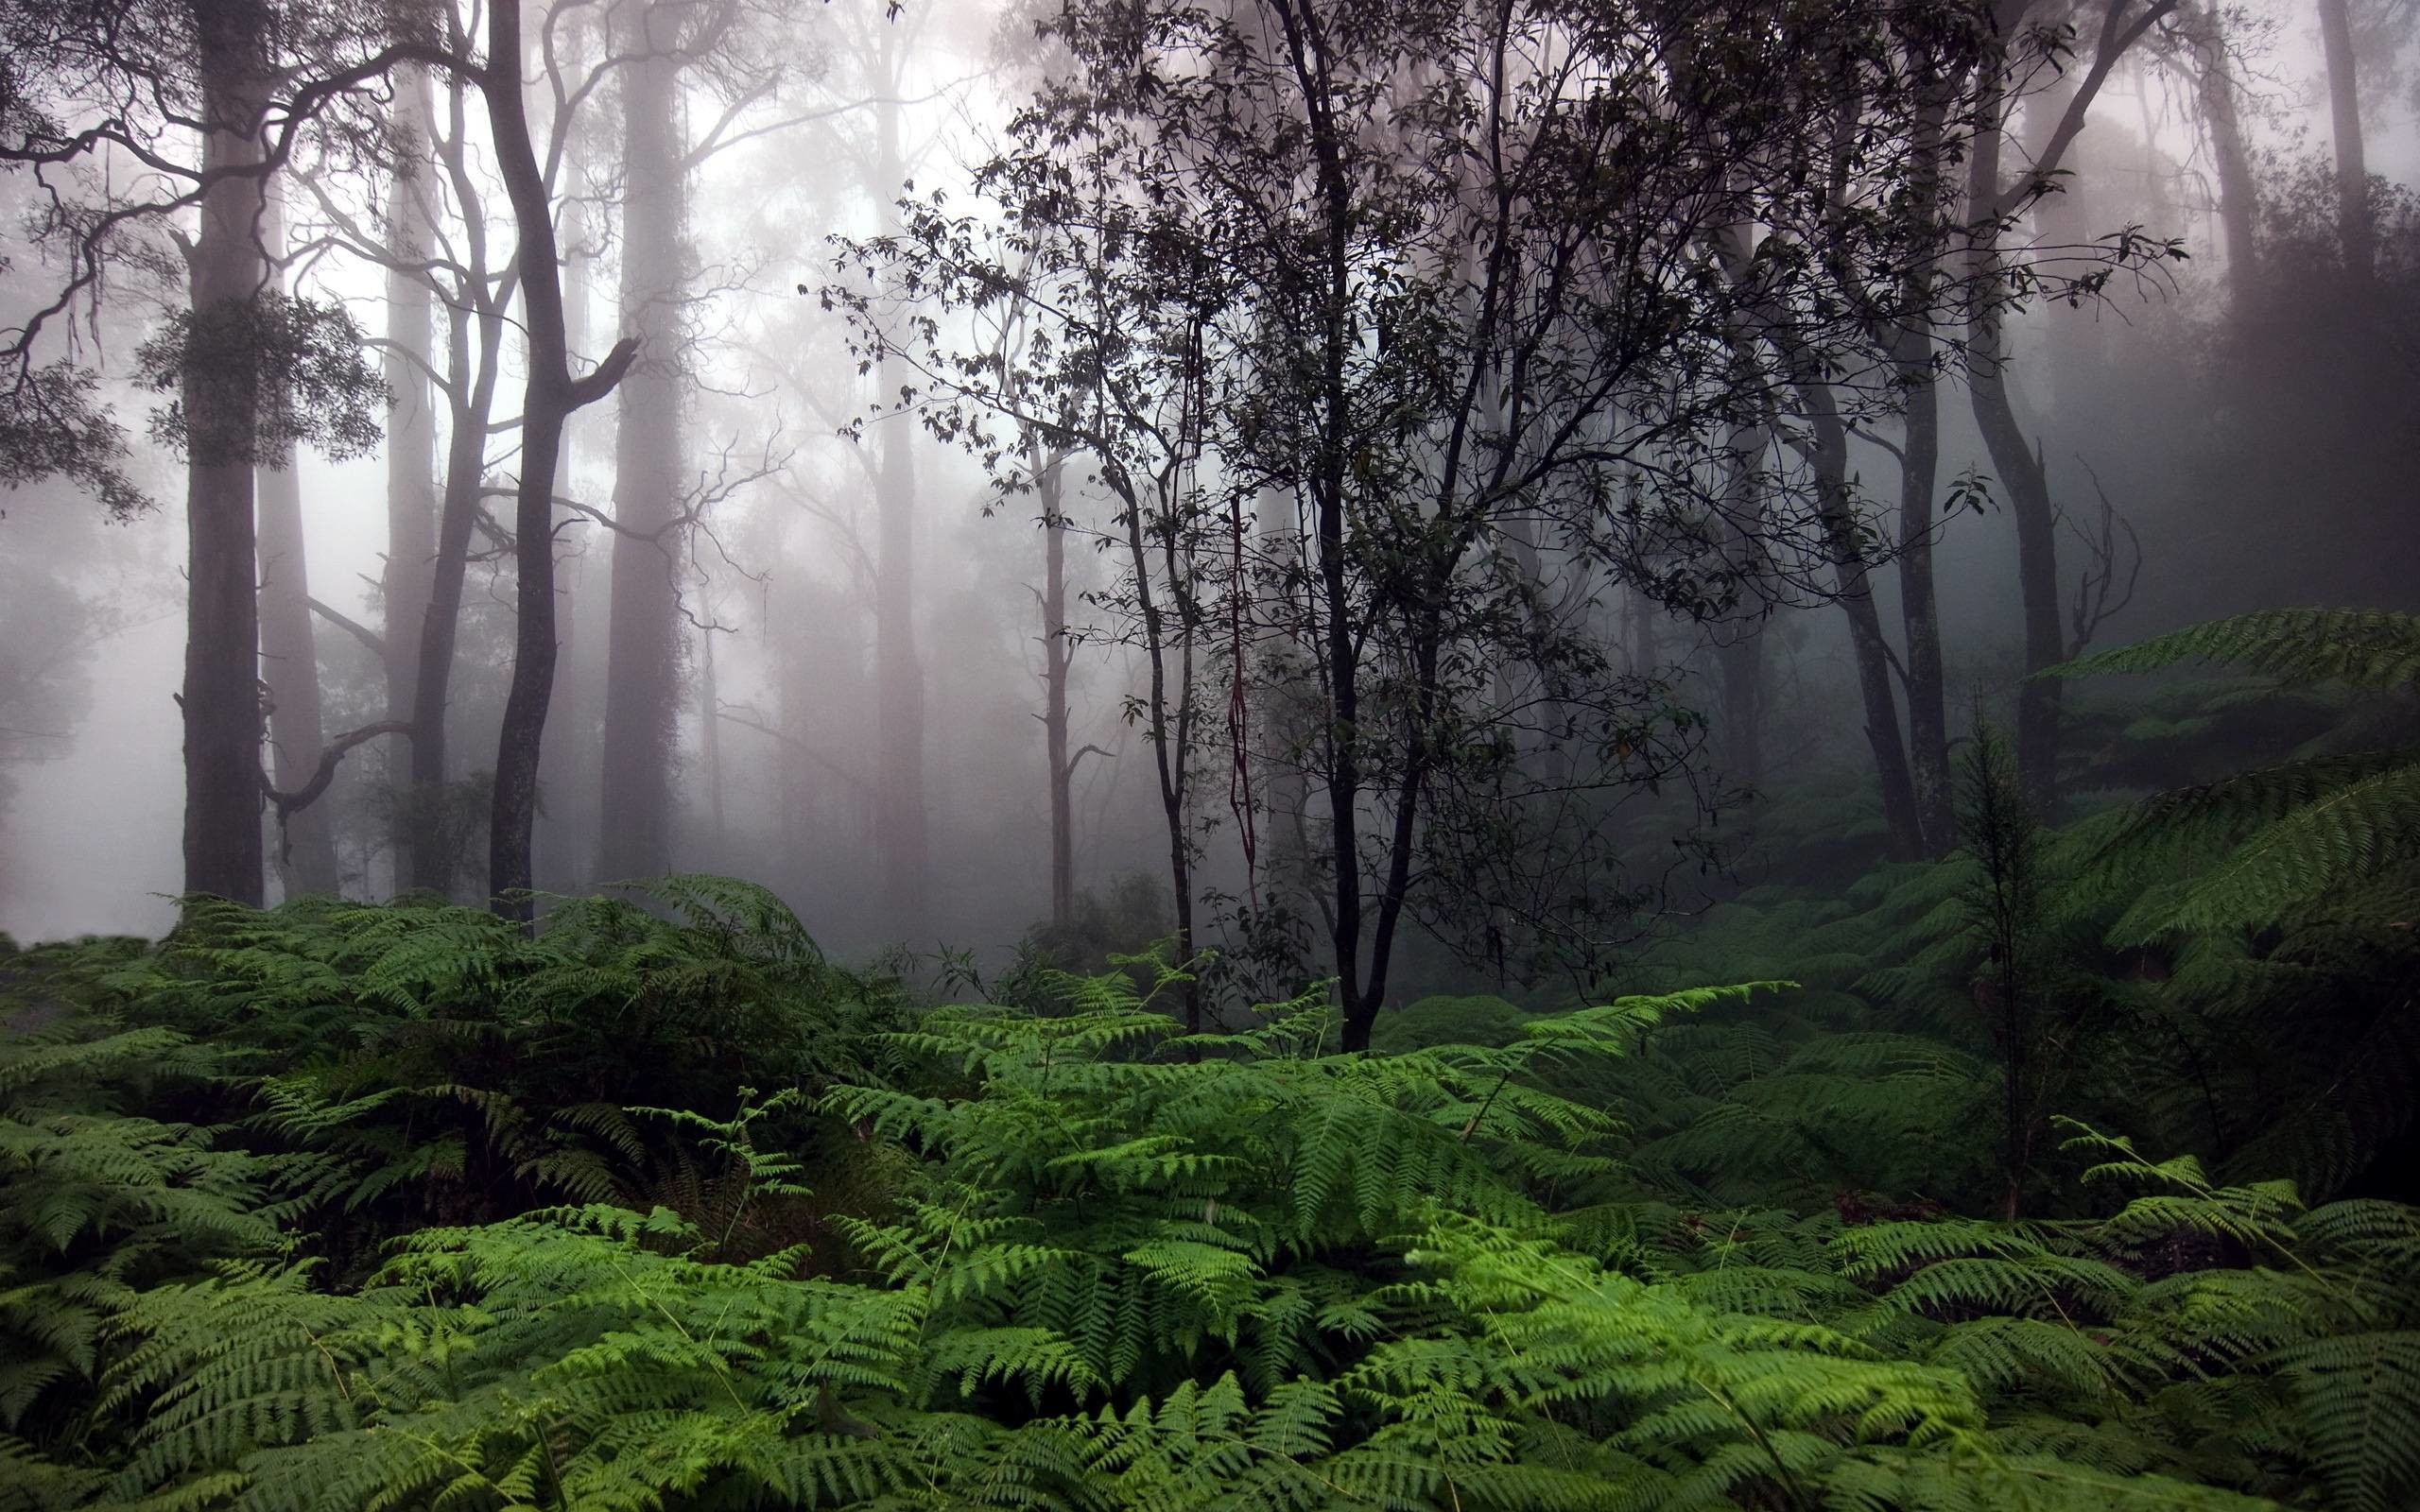 2560x1600, Rain Forest Wallpapers - Rainy Forest Background - HD Wallpaper